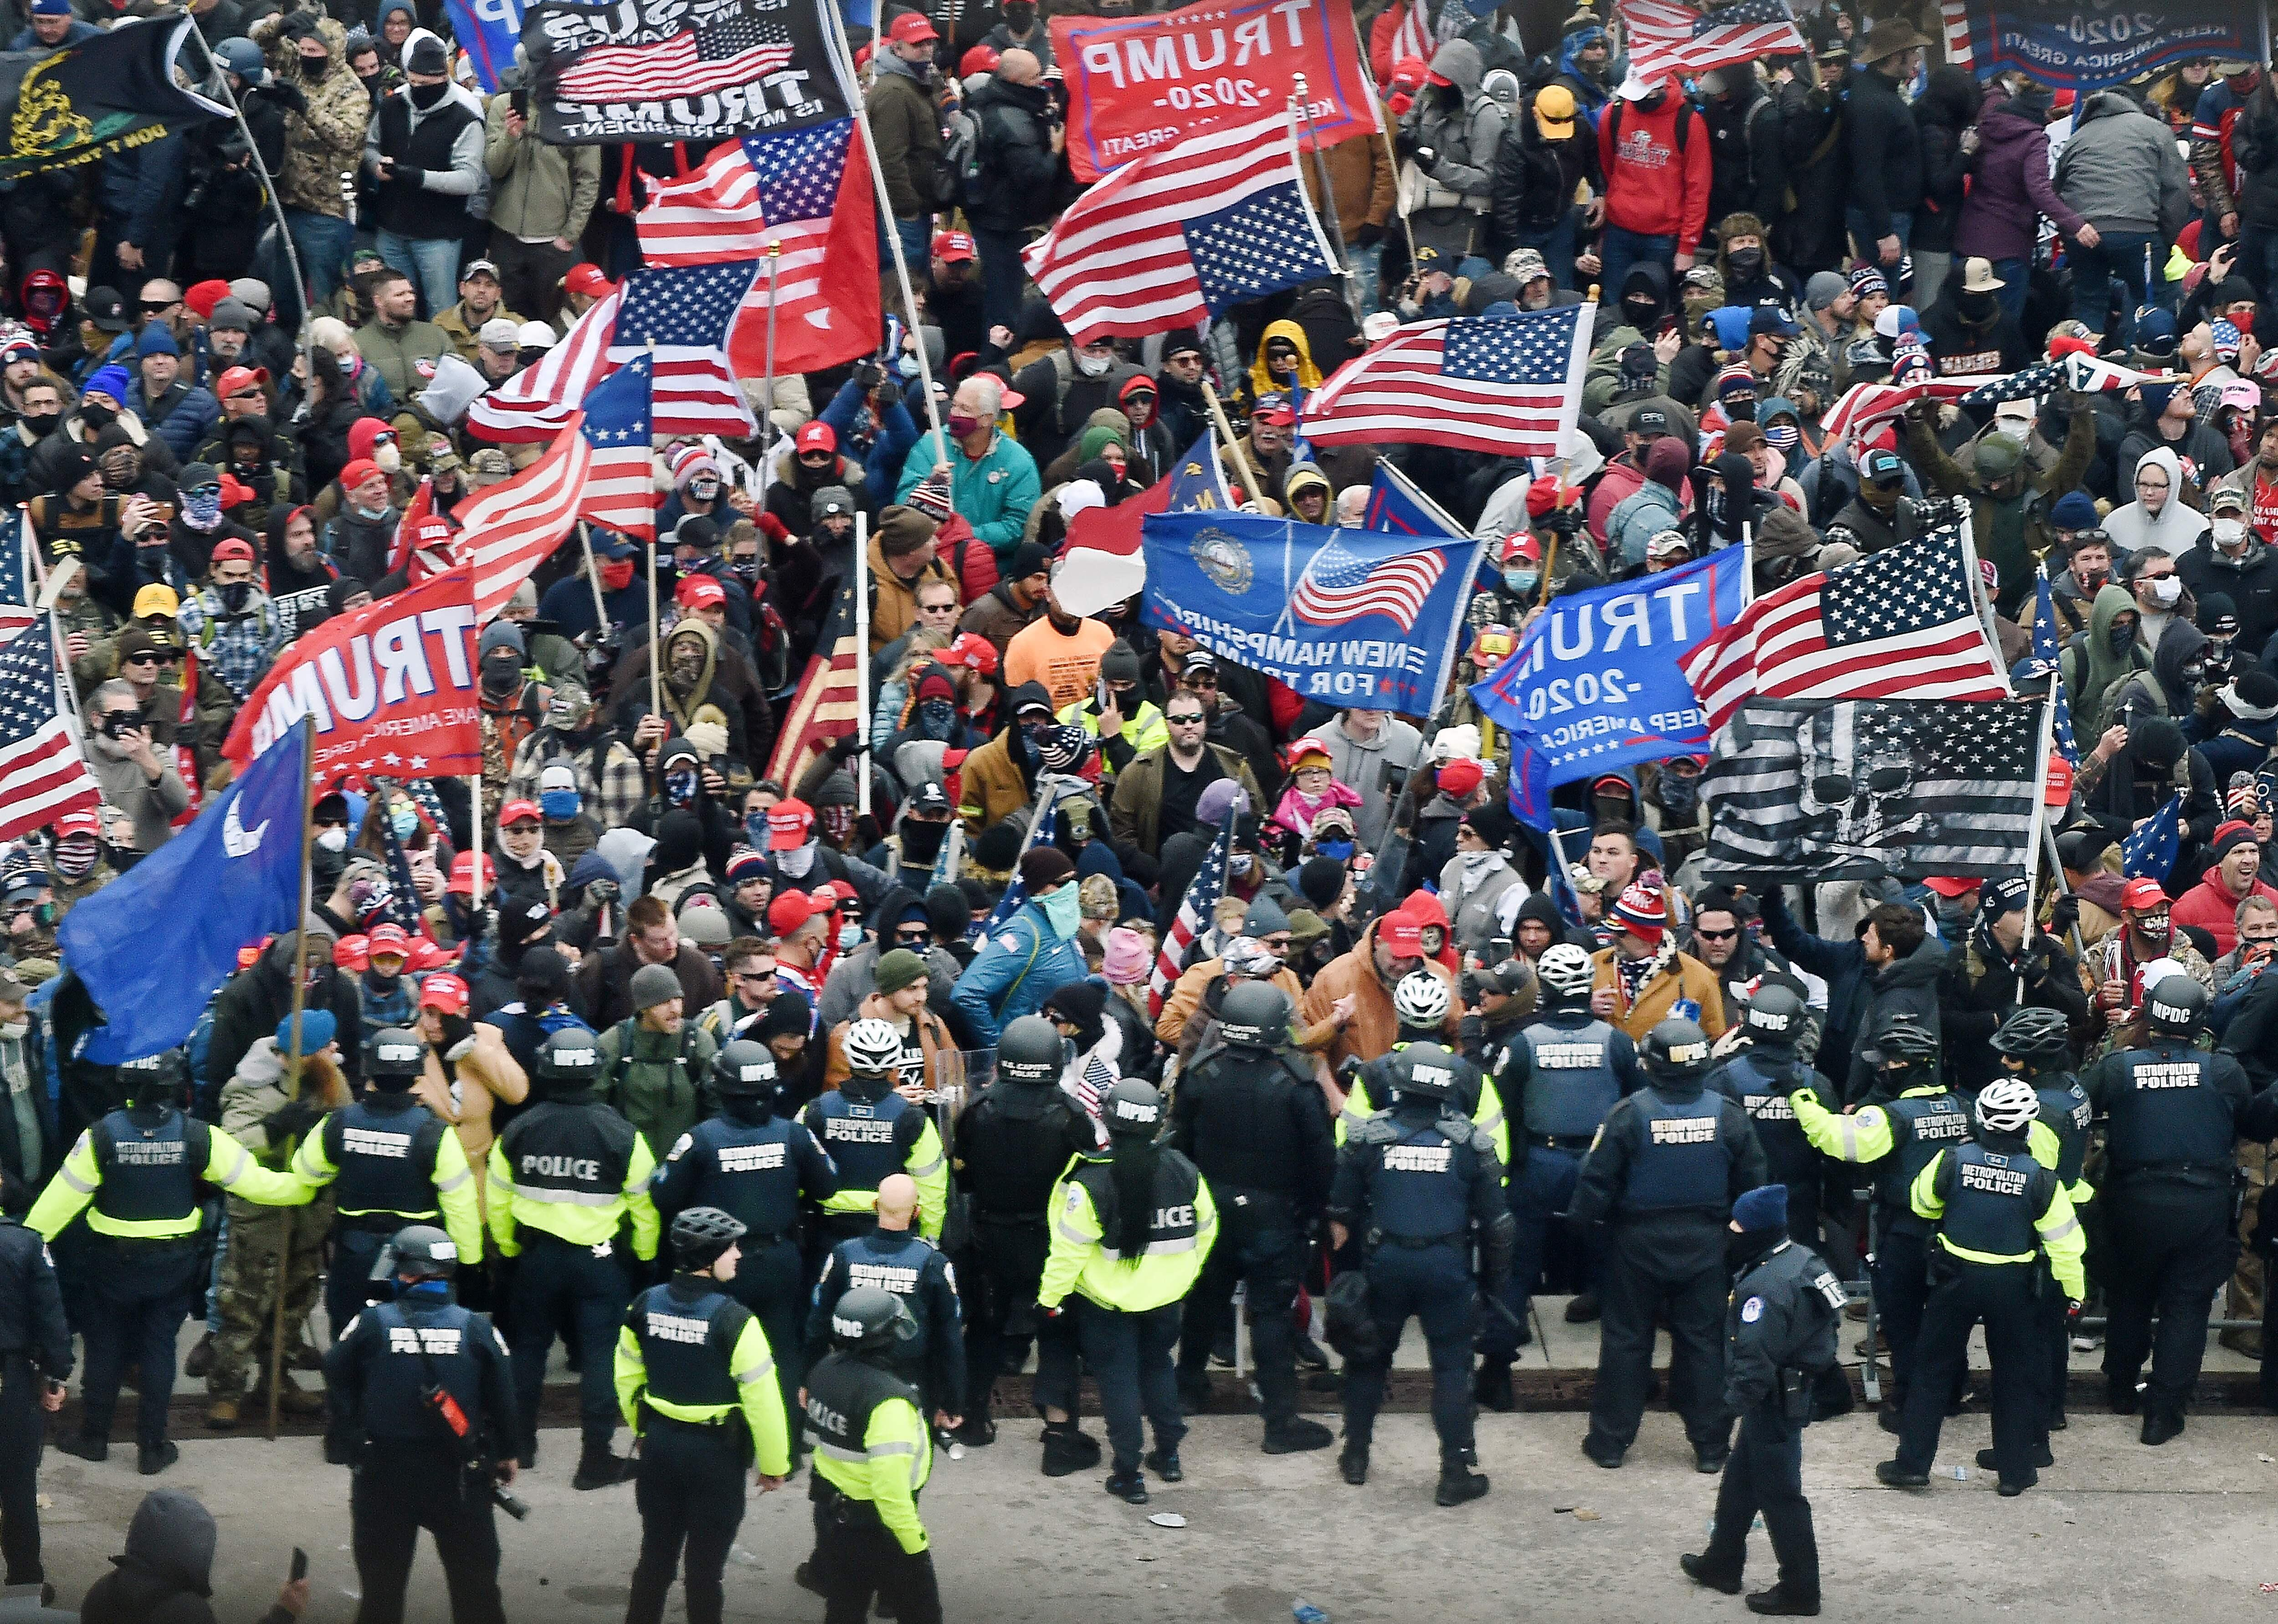 <p>President Donald Trump's supporters clash with police and security forces as they storm the US Capitol in Washington, DC on January 6, 2021.</p>